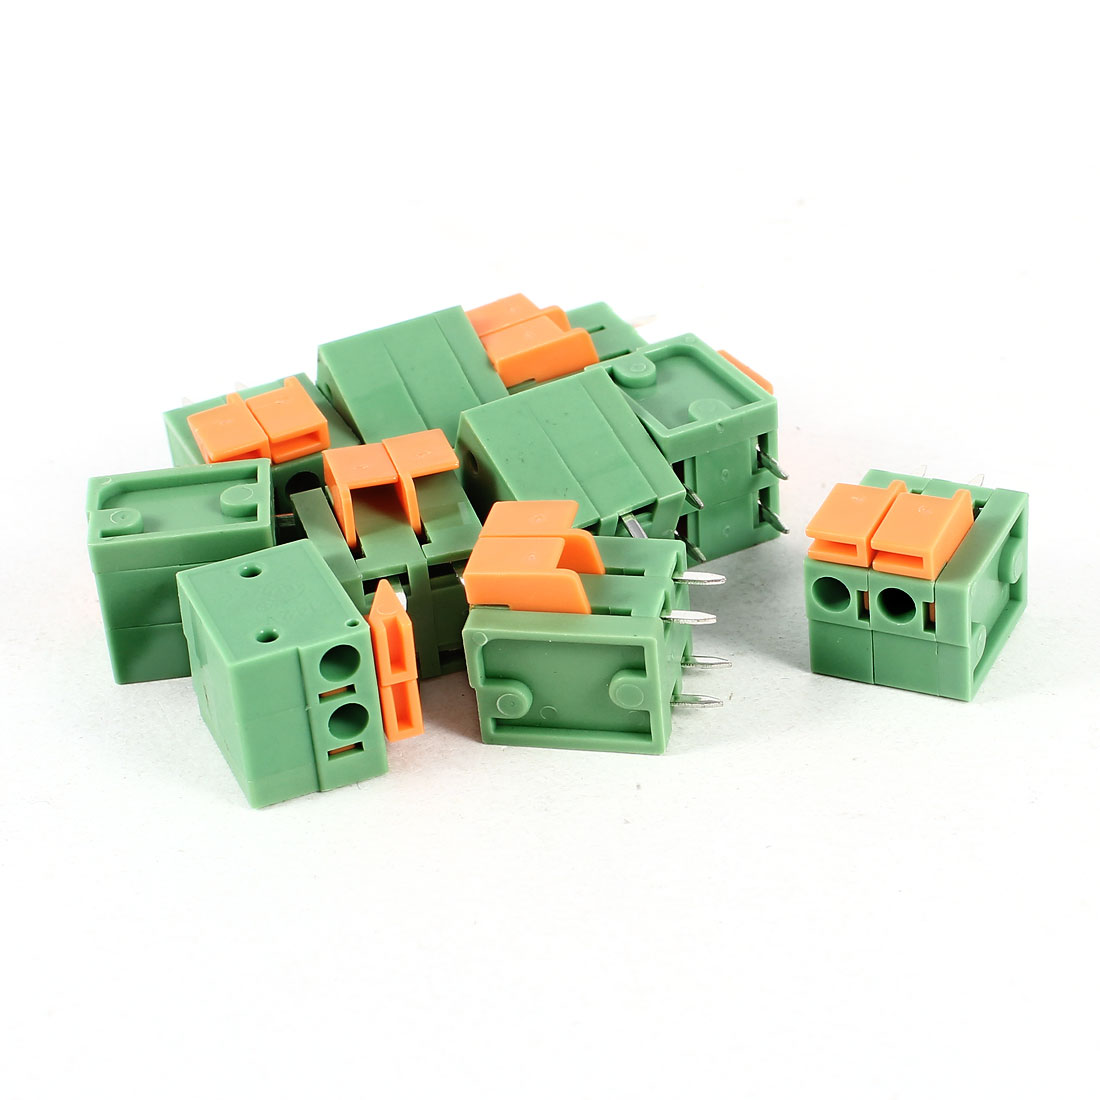 10 Pcs Green KF142V 2Position 5.08mm Pitch 4Pin Spring Terminal Blocks Connectors 250V 10A